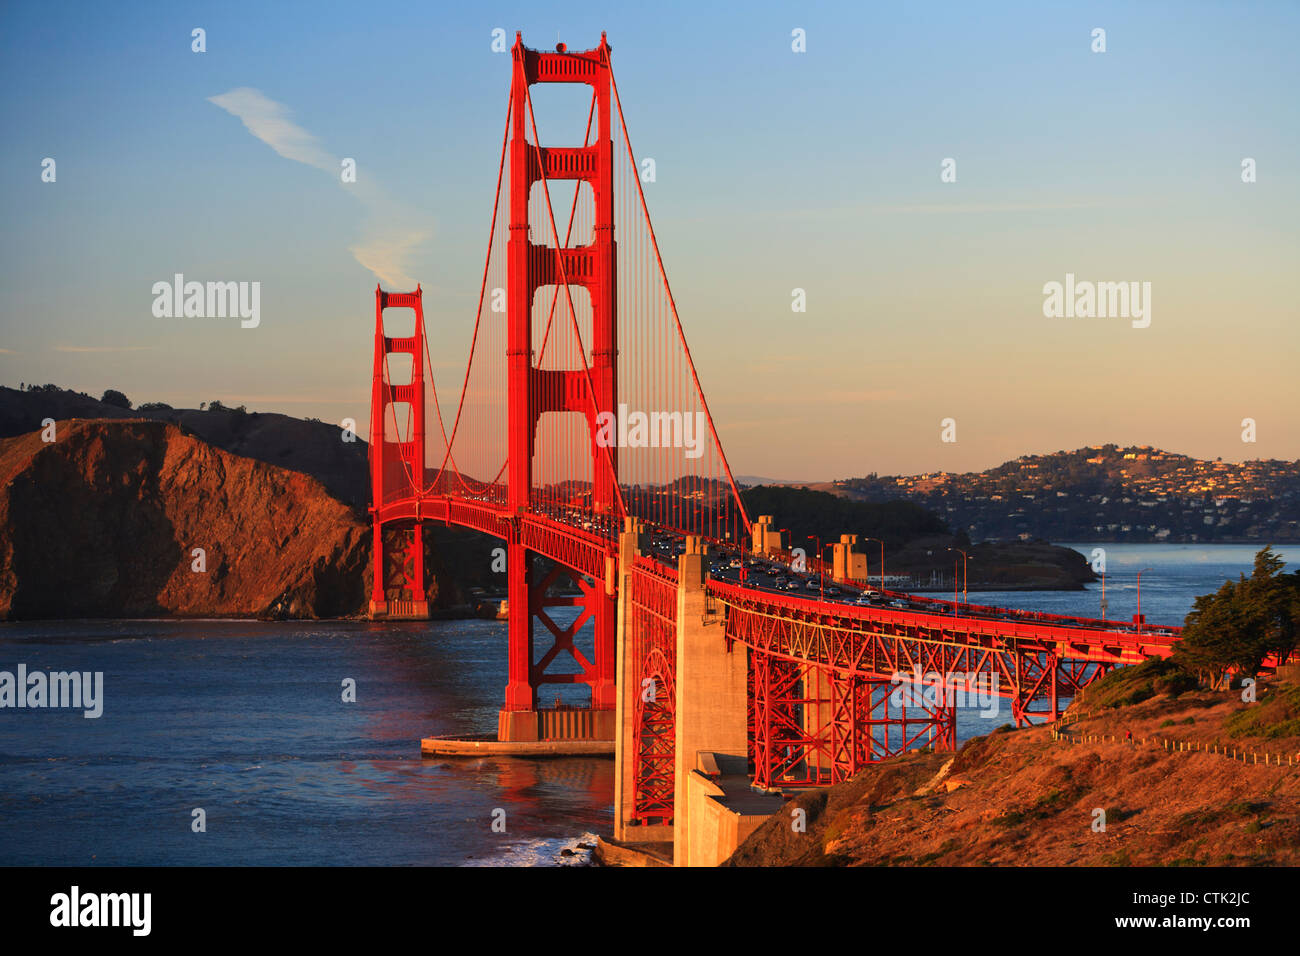 a history of the golden gates in the united states Deconstructing history: golden gate bridge | history history loading location: united states restricted mode: off history help about.